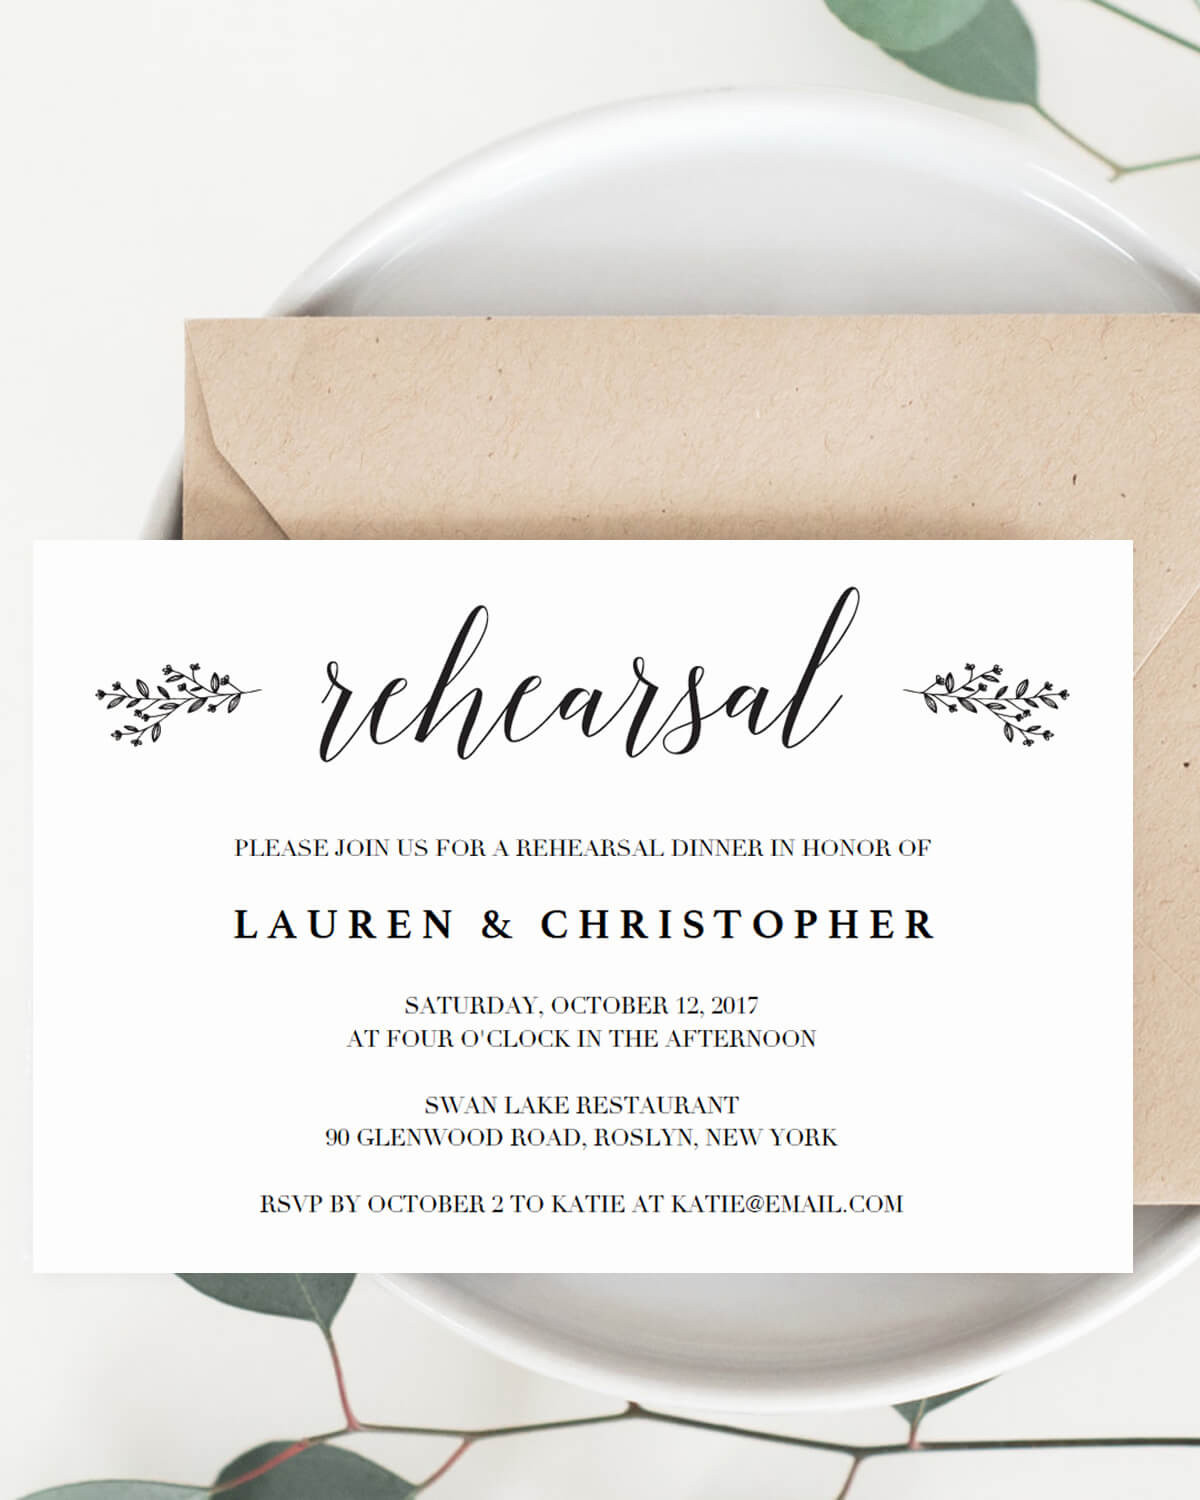 Invite Your Guests In Style To Wedding Rehearsal Dinner With This Rustic Tiny Leaves